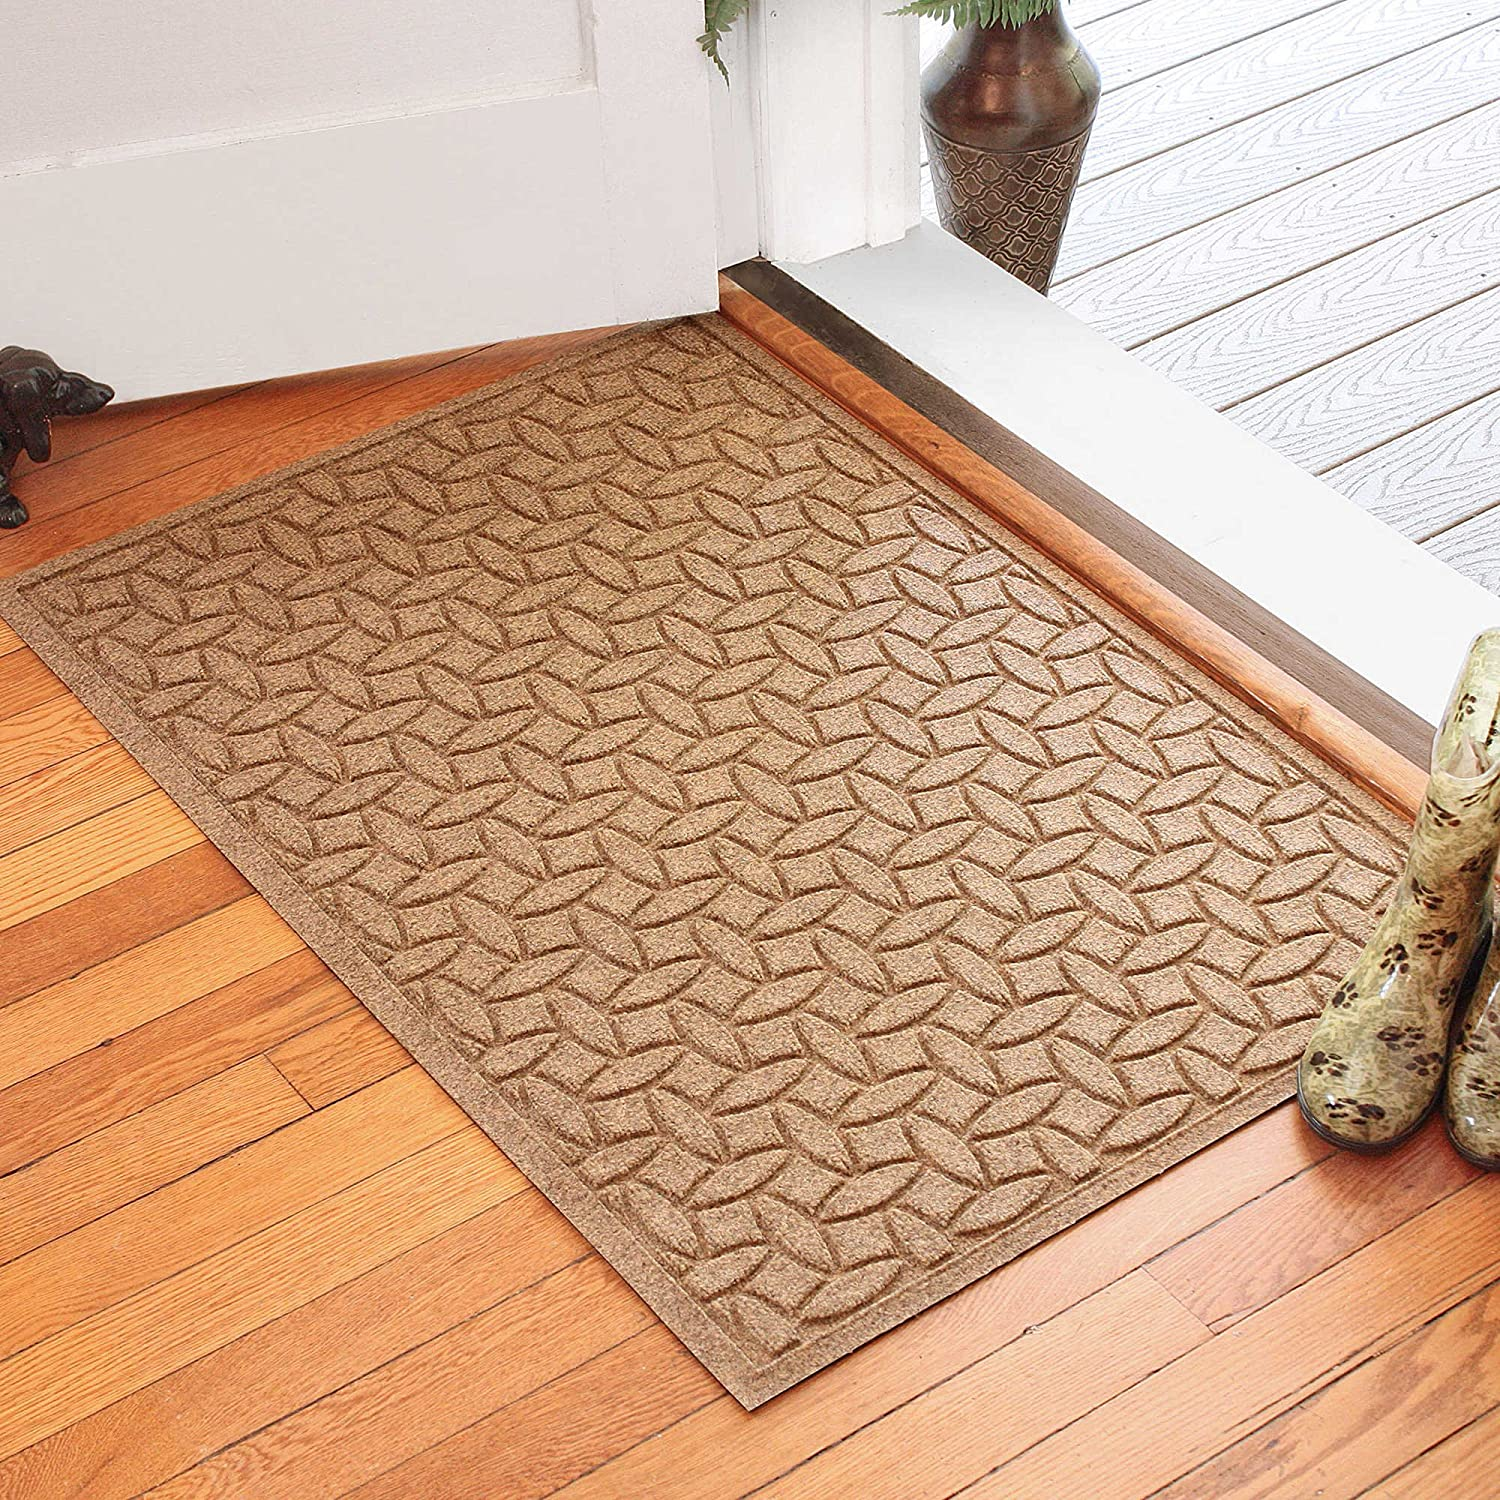 me washable again mats uk no doors mat door not indoor you doormat oh successify